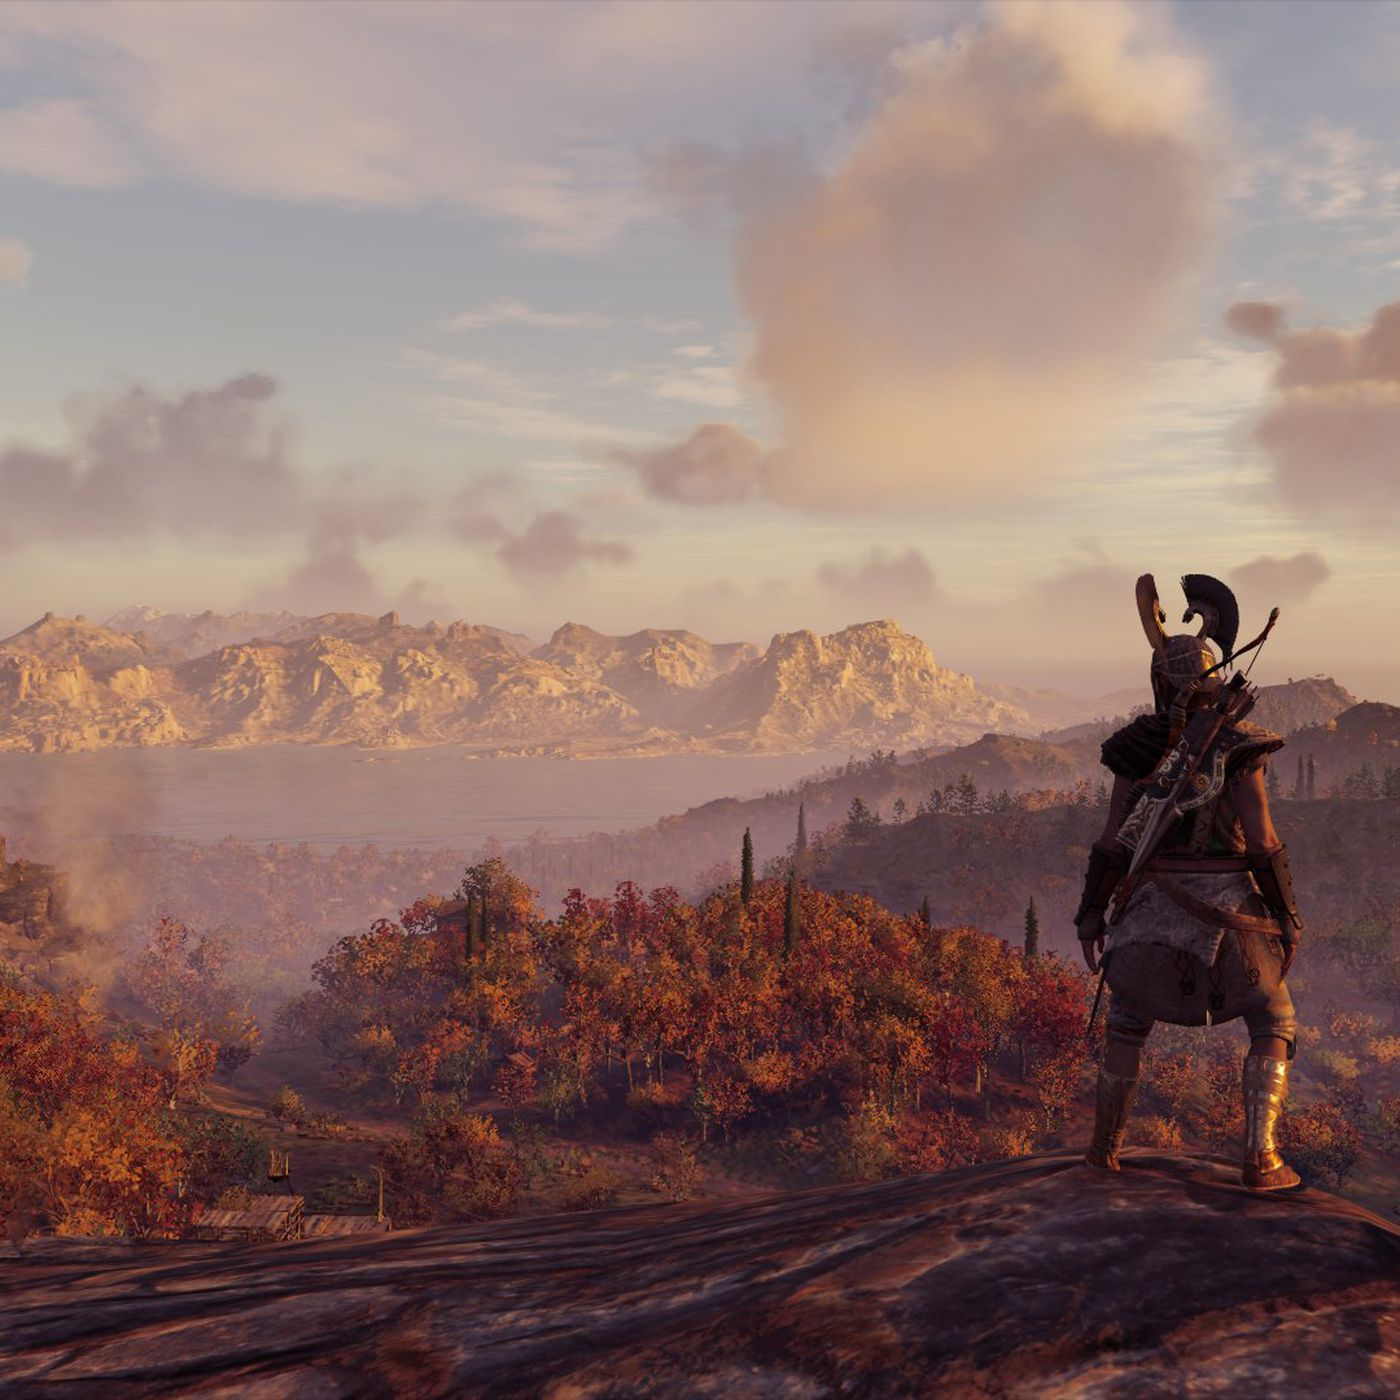 Google tests game streaming service with Assassin's Creed Odyssey